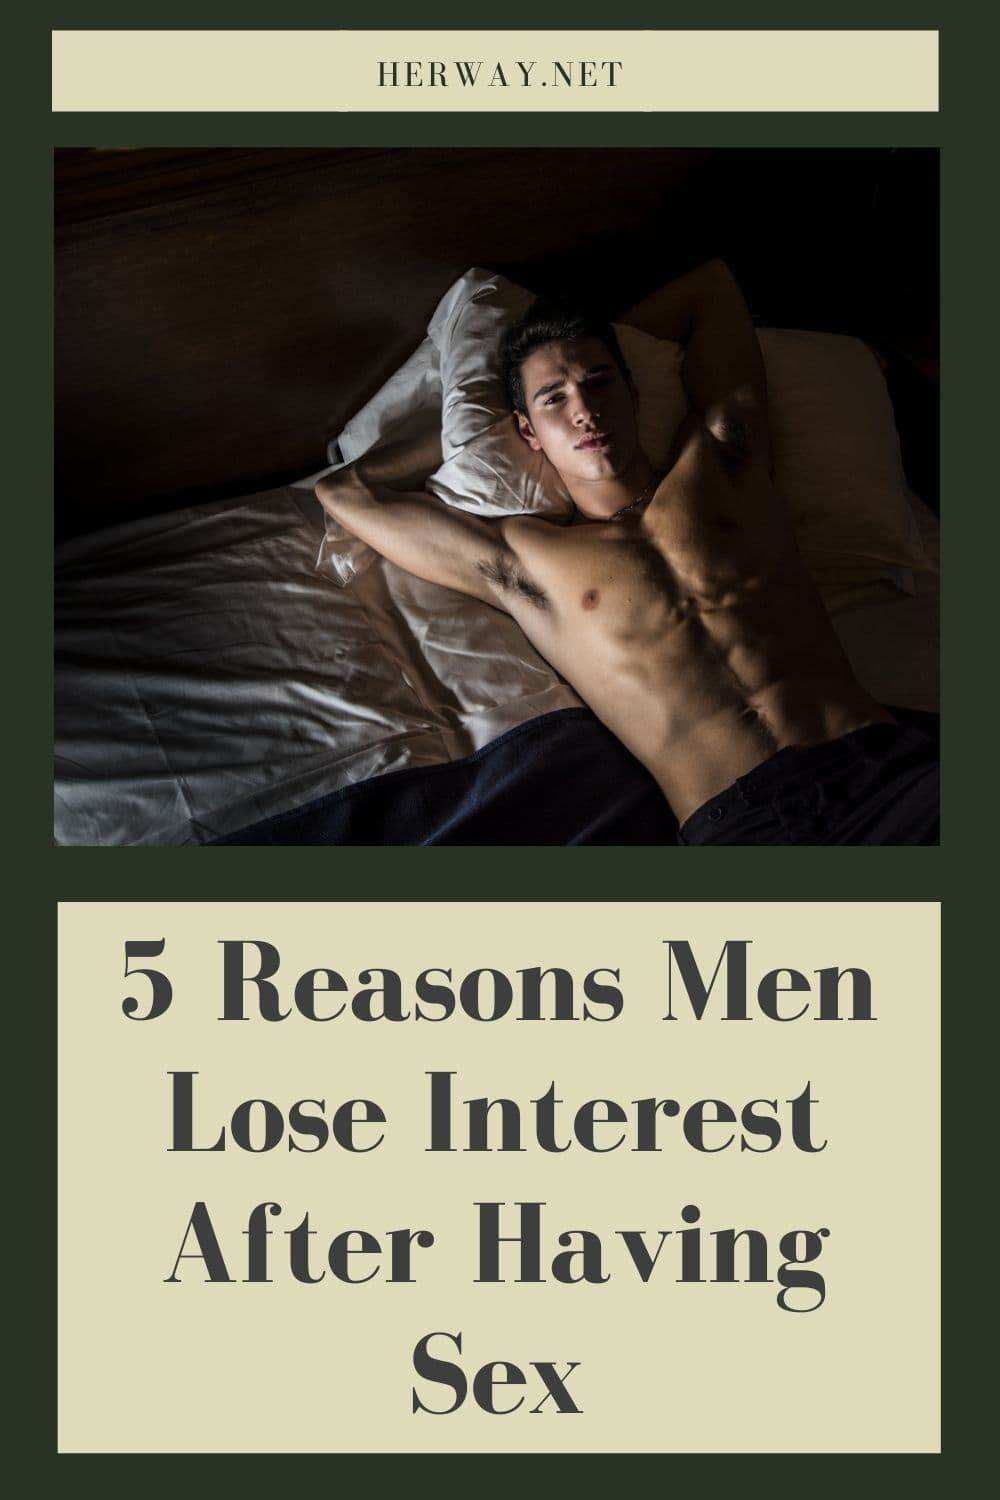 5 Reasons Men Lose Interest After Having Sex